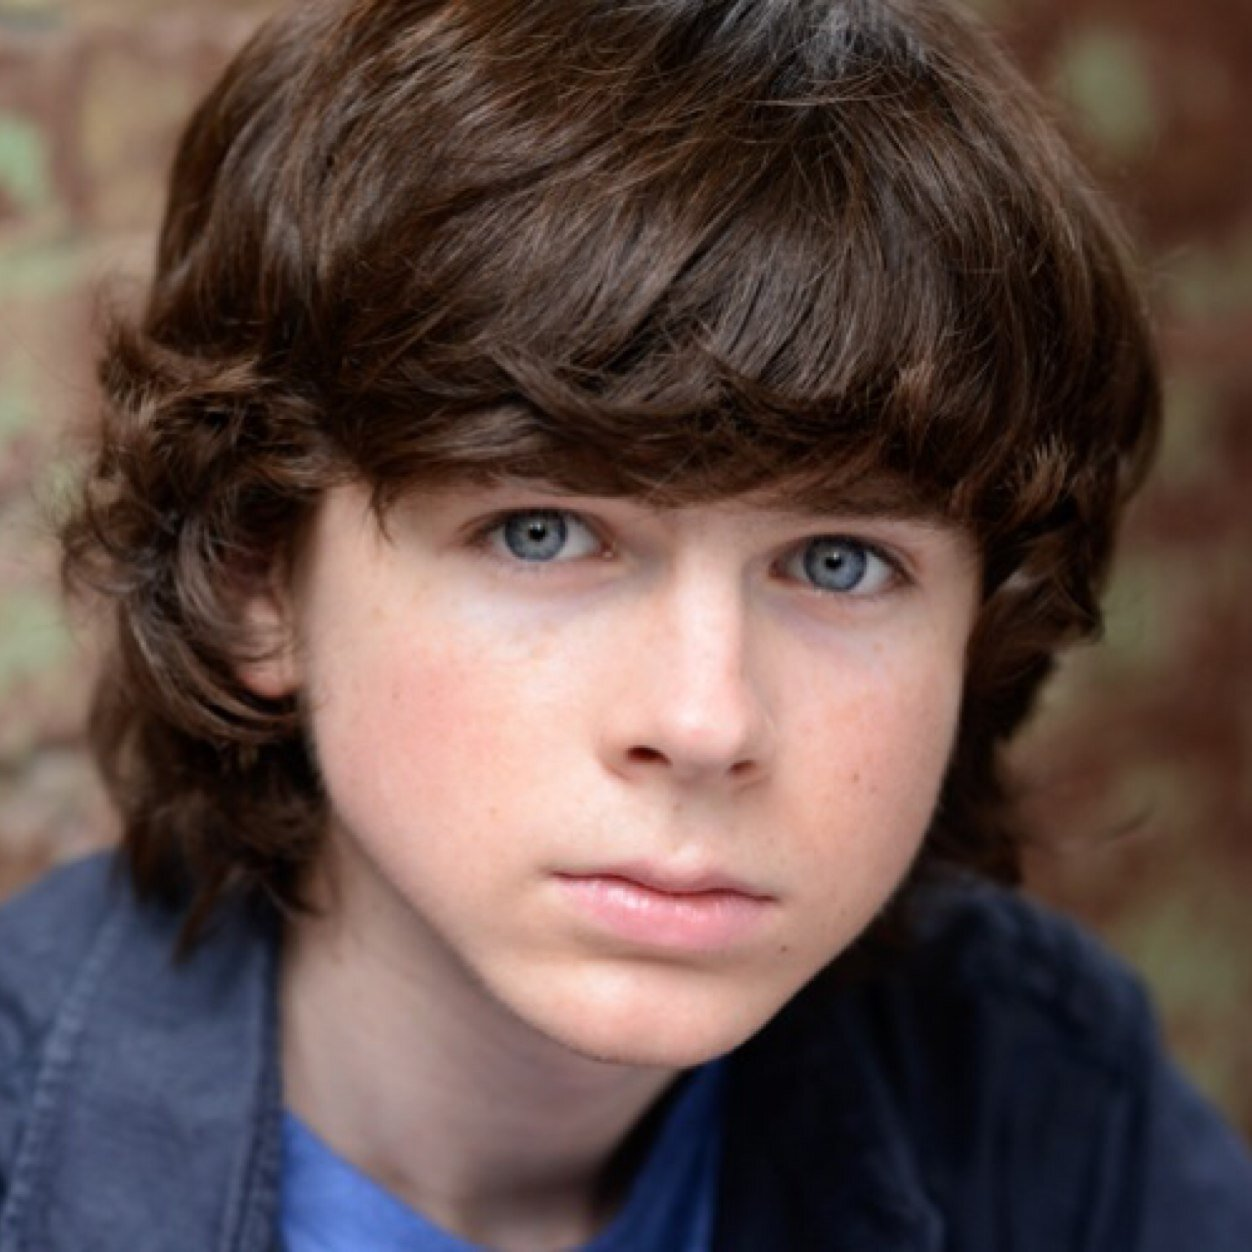 Chandler Riggs earned a  million dollar salary, leaving the net worth at 1 million in 2017